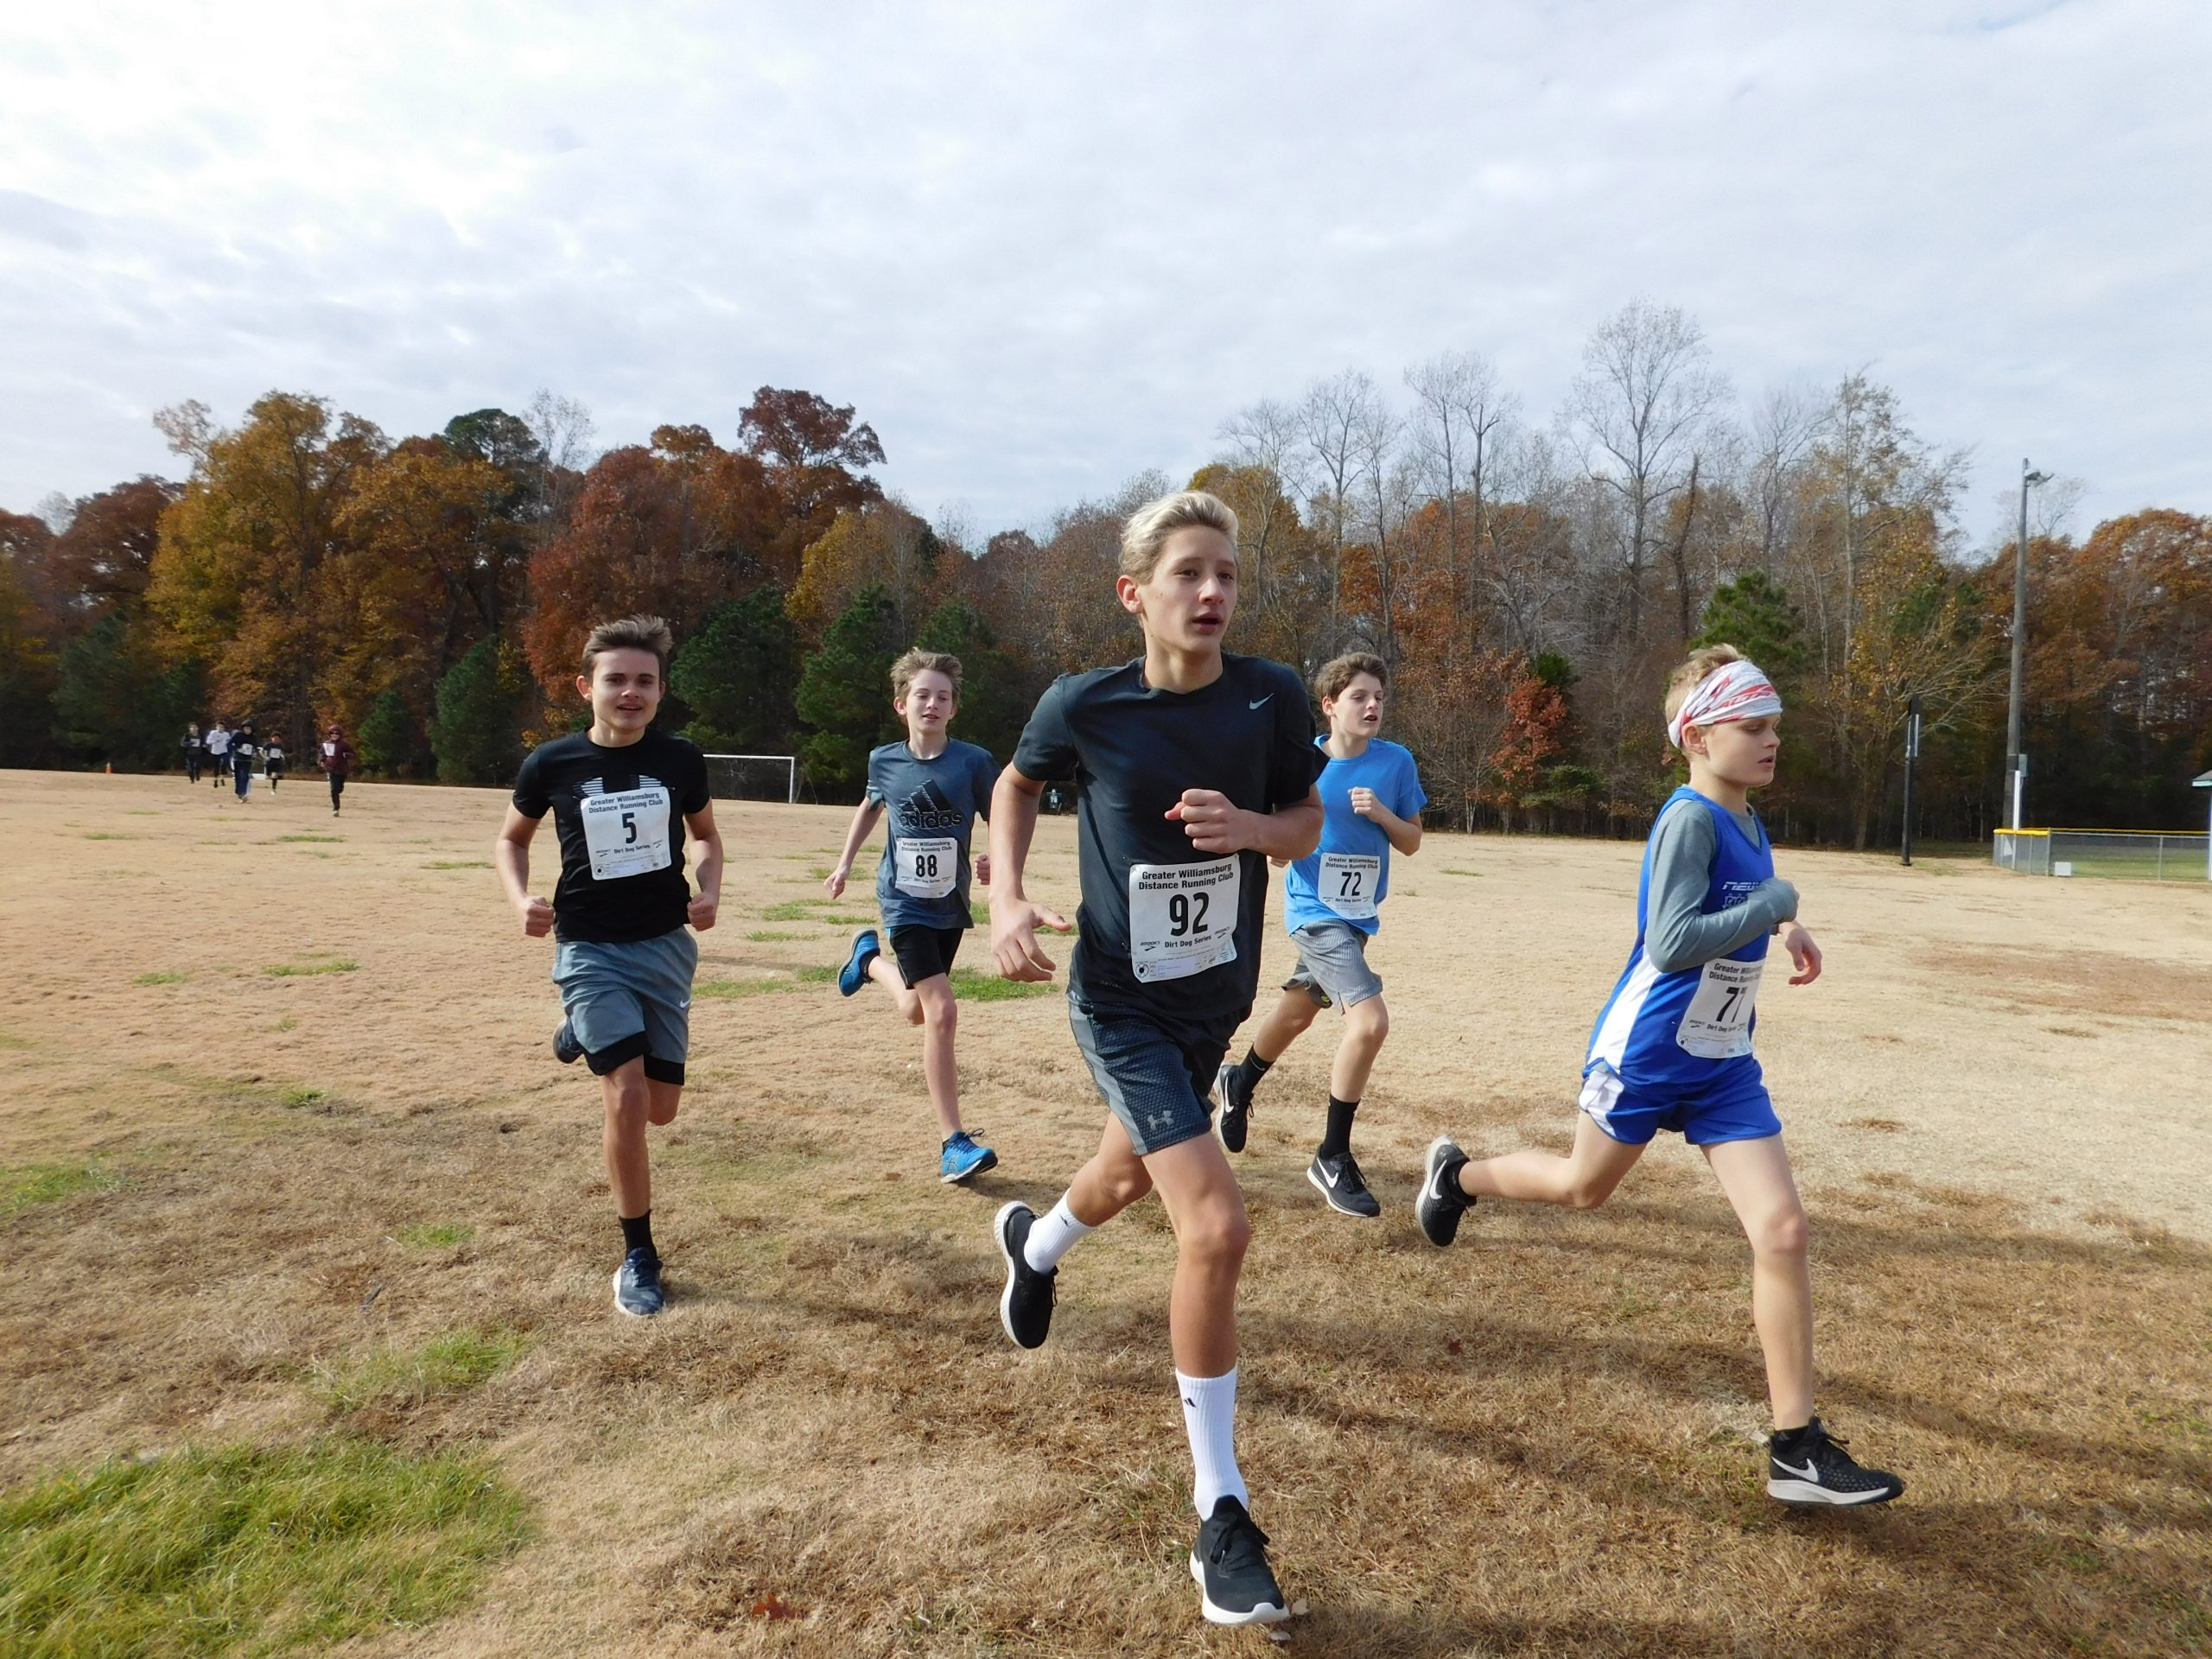 Boys running in a 1.5 Mile event